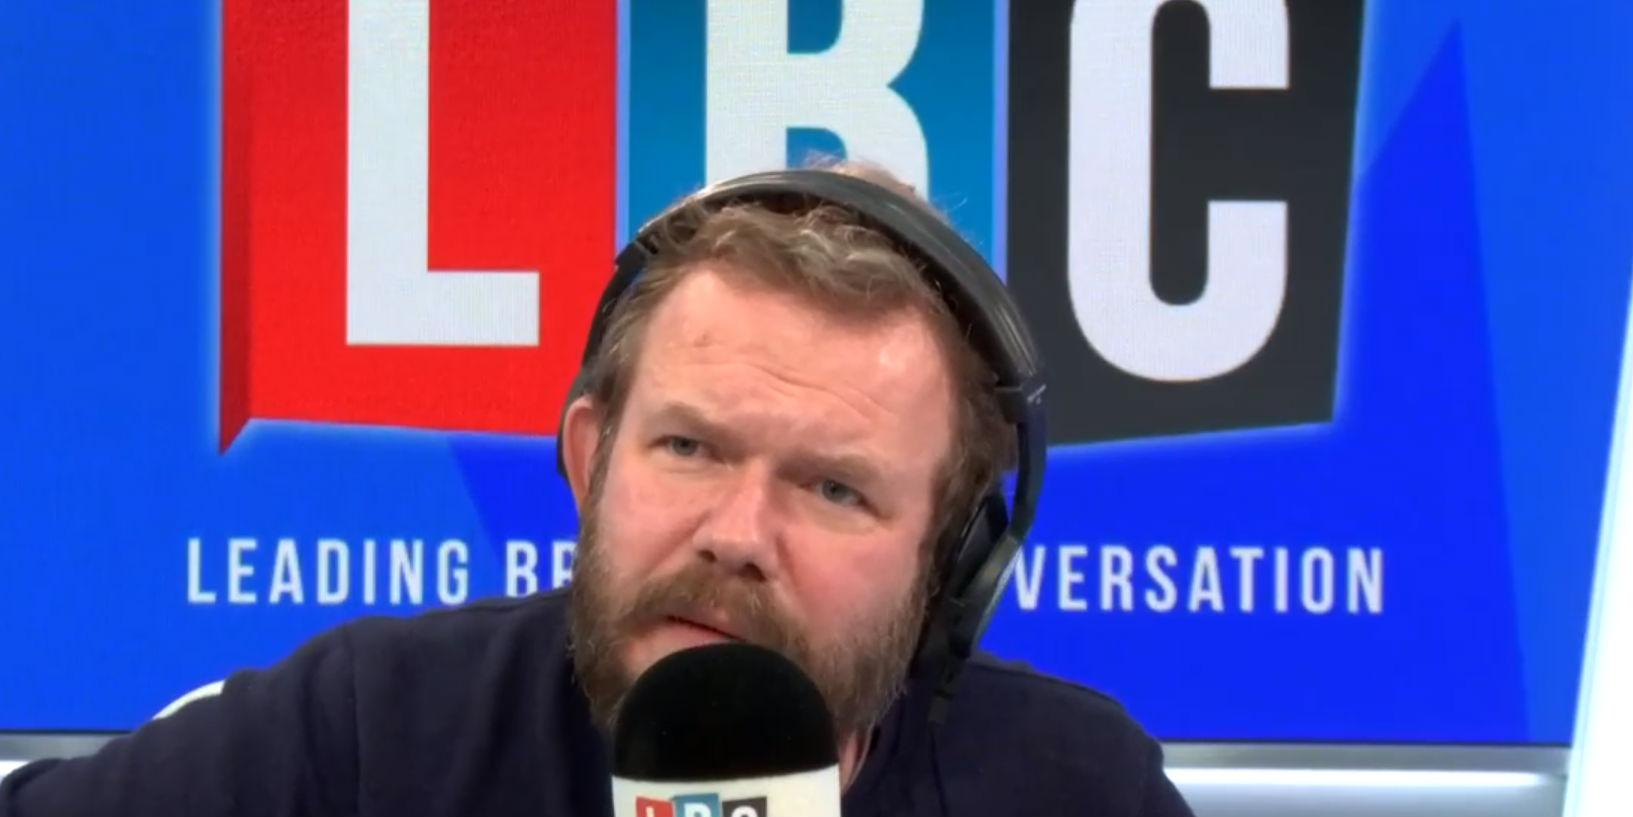 LBC caller can't vote if Boris Johnson's photo ID plan is implemented